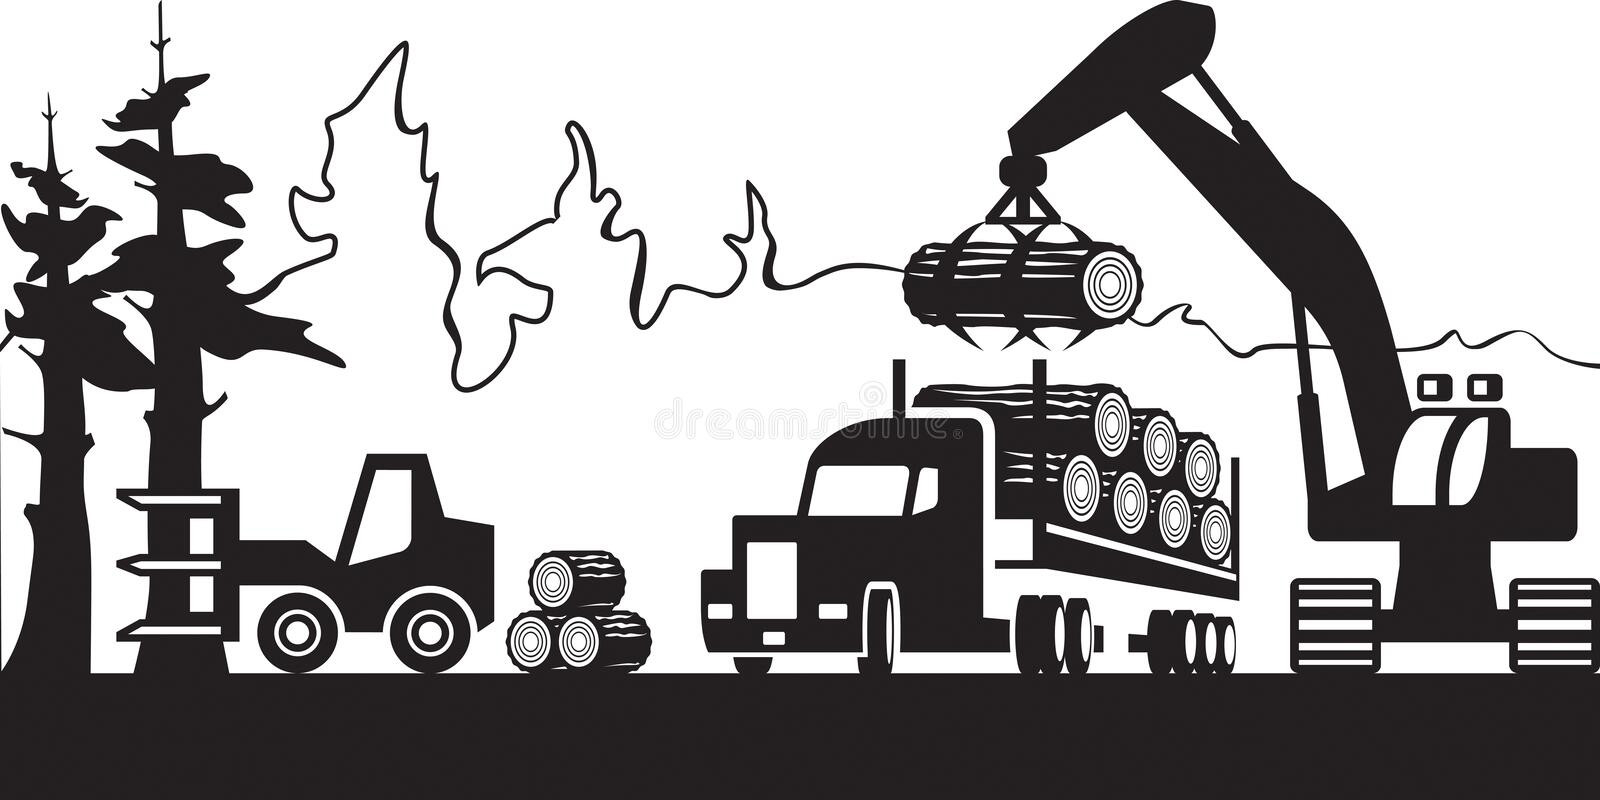 Timber harvesting in the forest. Vector illustration royalty free illustration